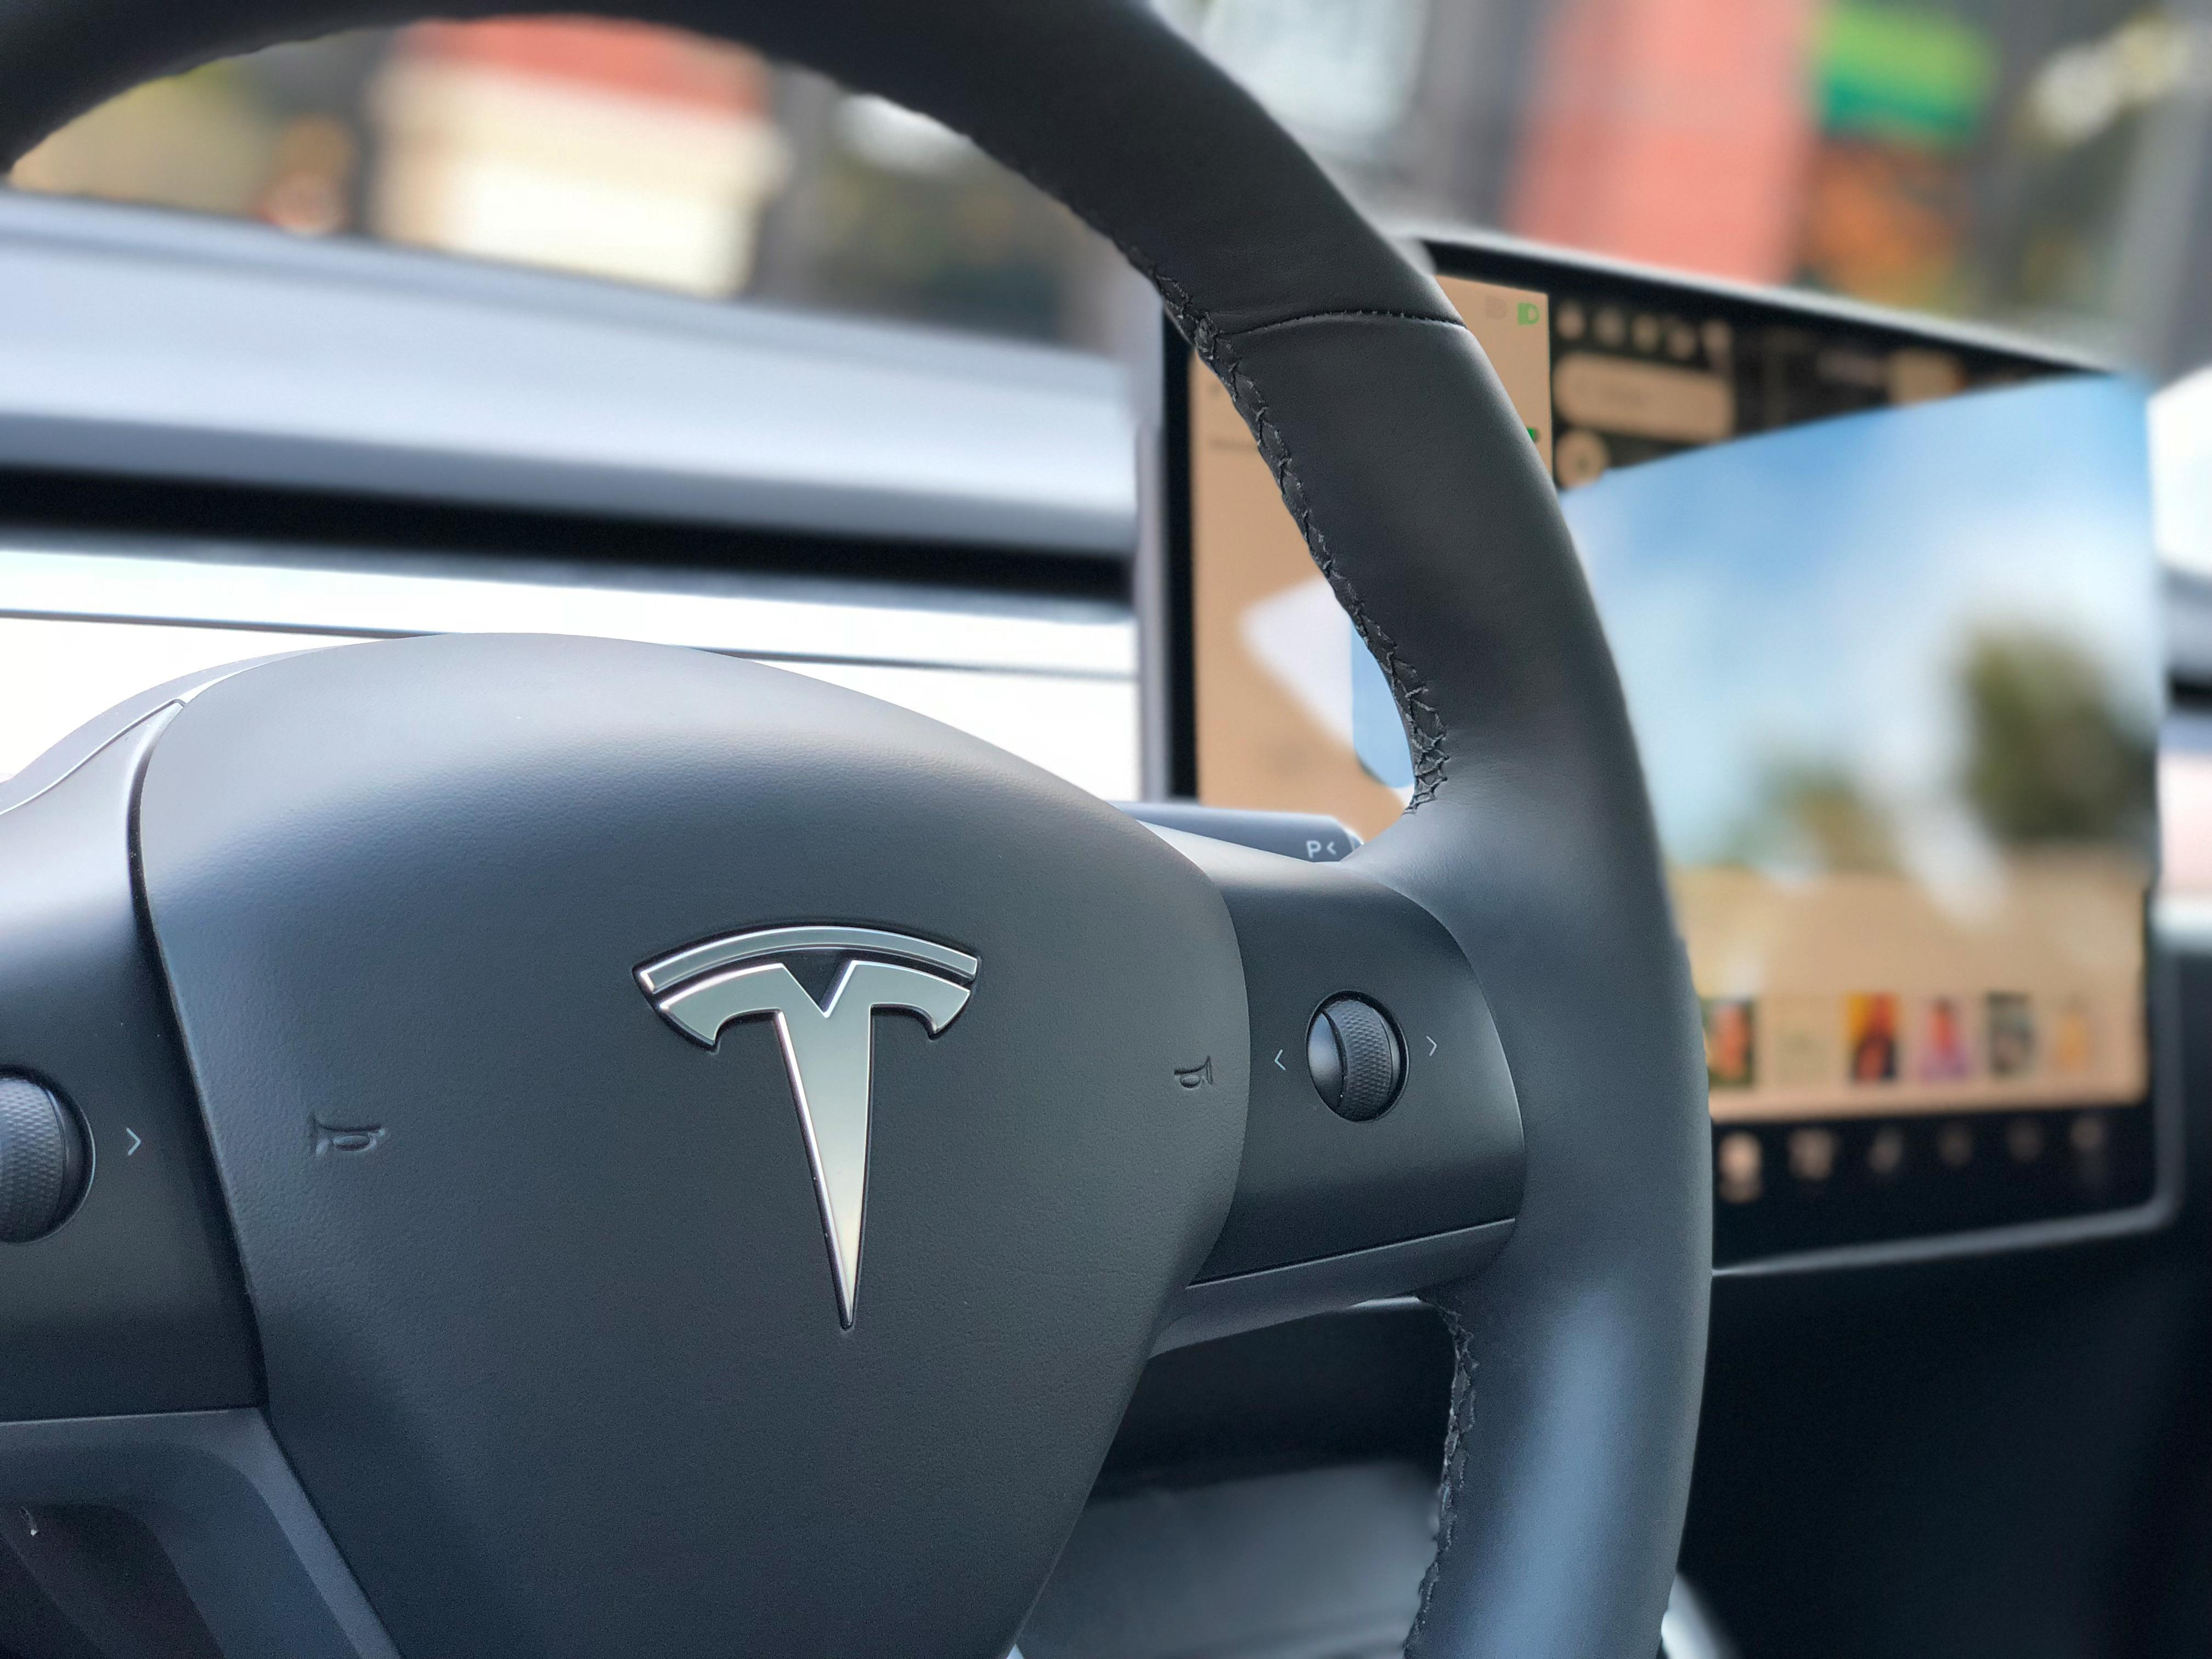 uploads///Tesla cybertruck TSLA stock